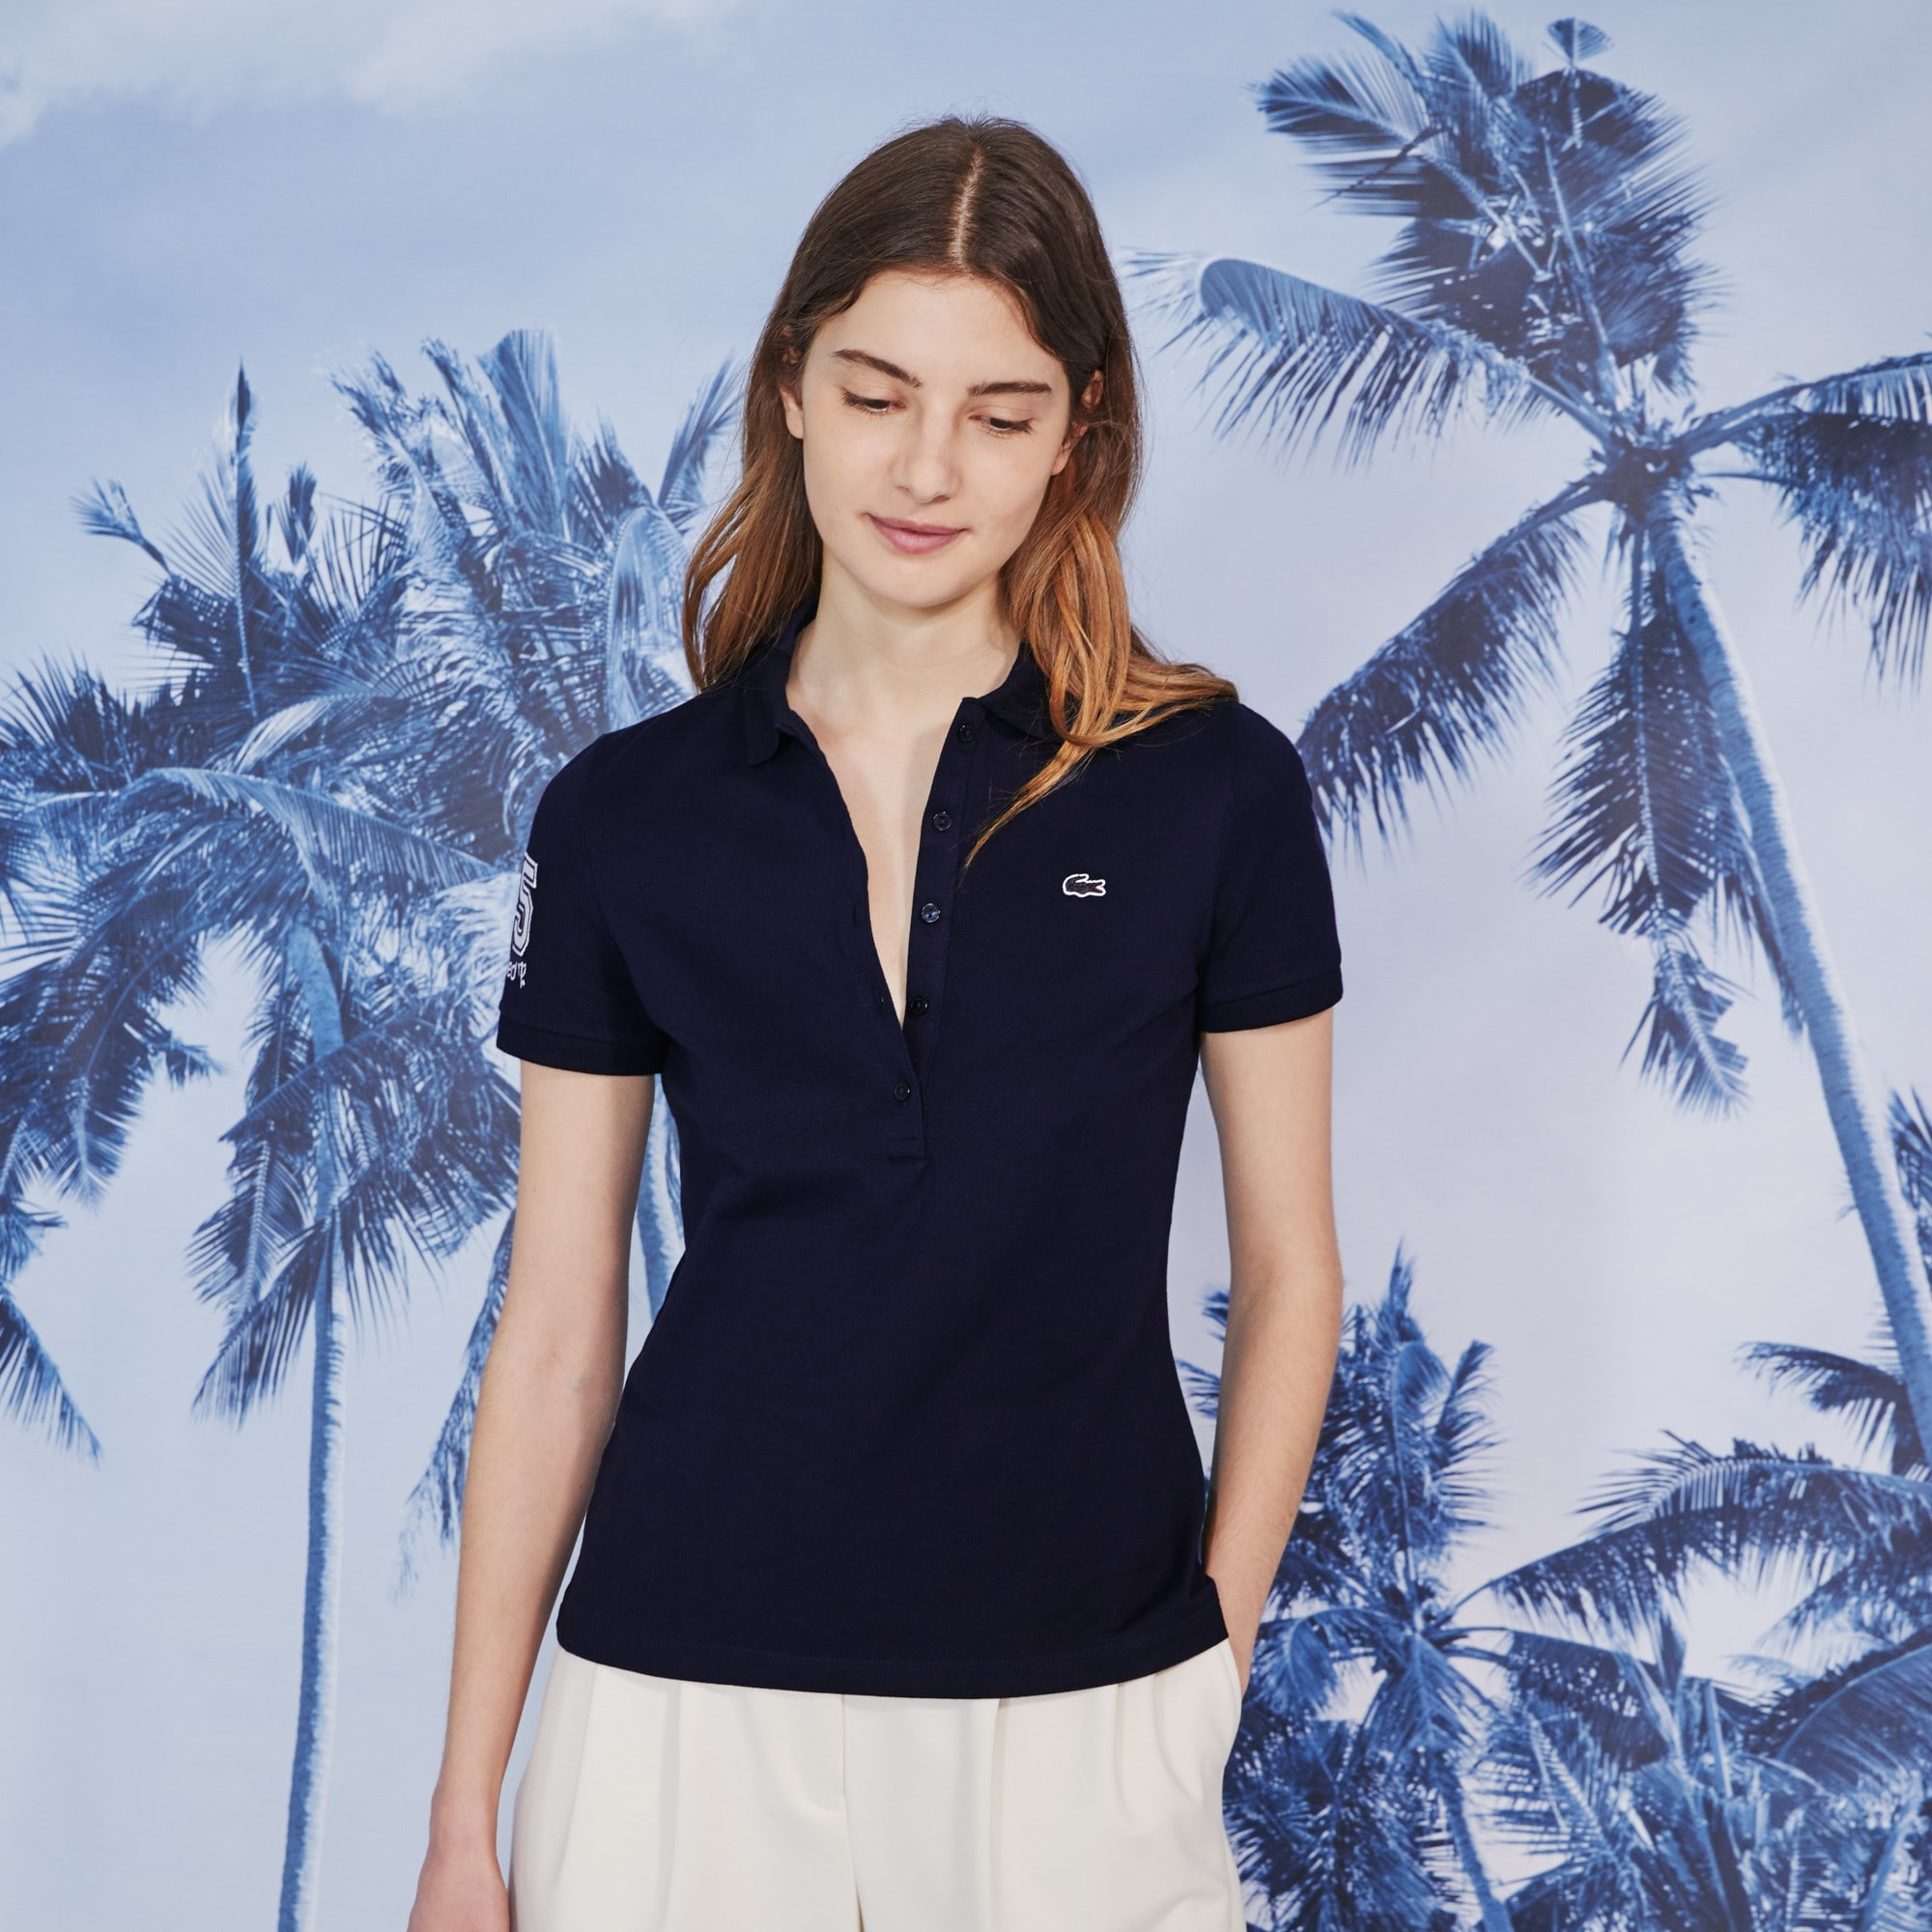 Women's Lacoste Slim Fit Club Med Polo Shirt